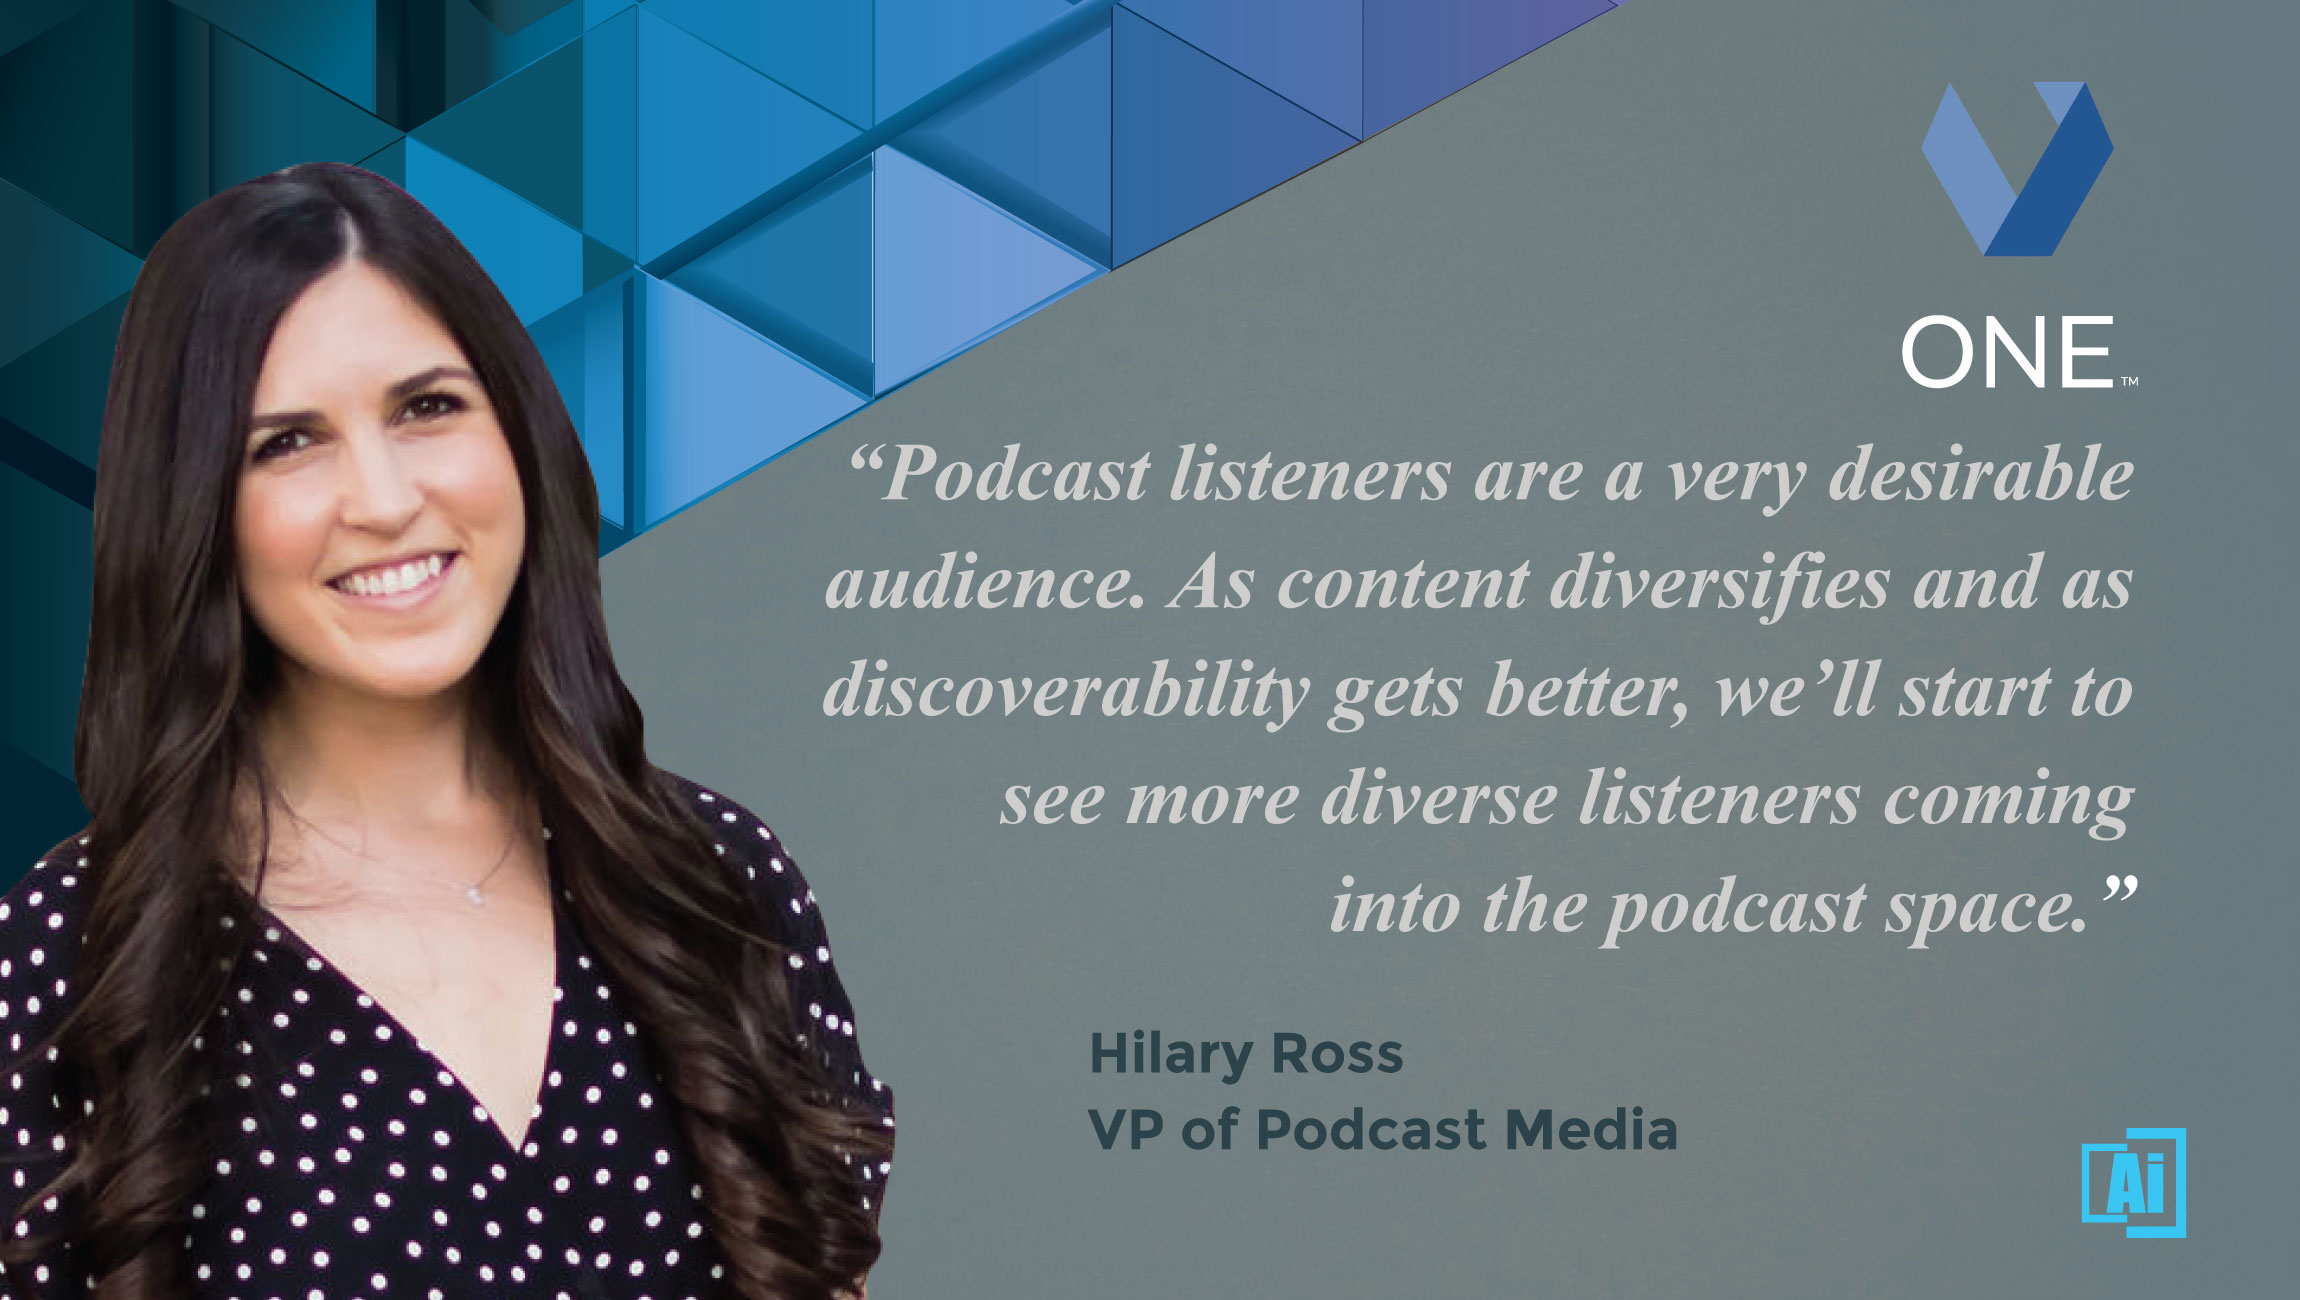 AiThority Interview with Hilary Ross, VP of Podcast Media at Veritone One